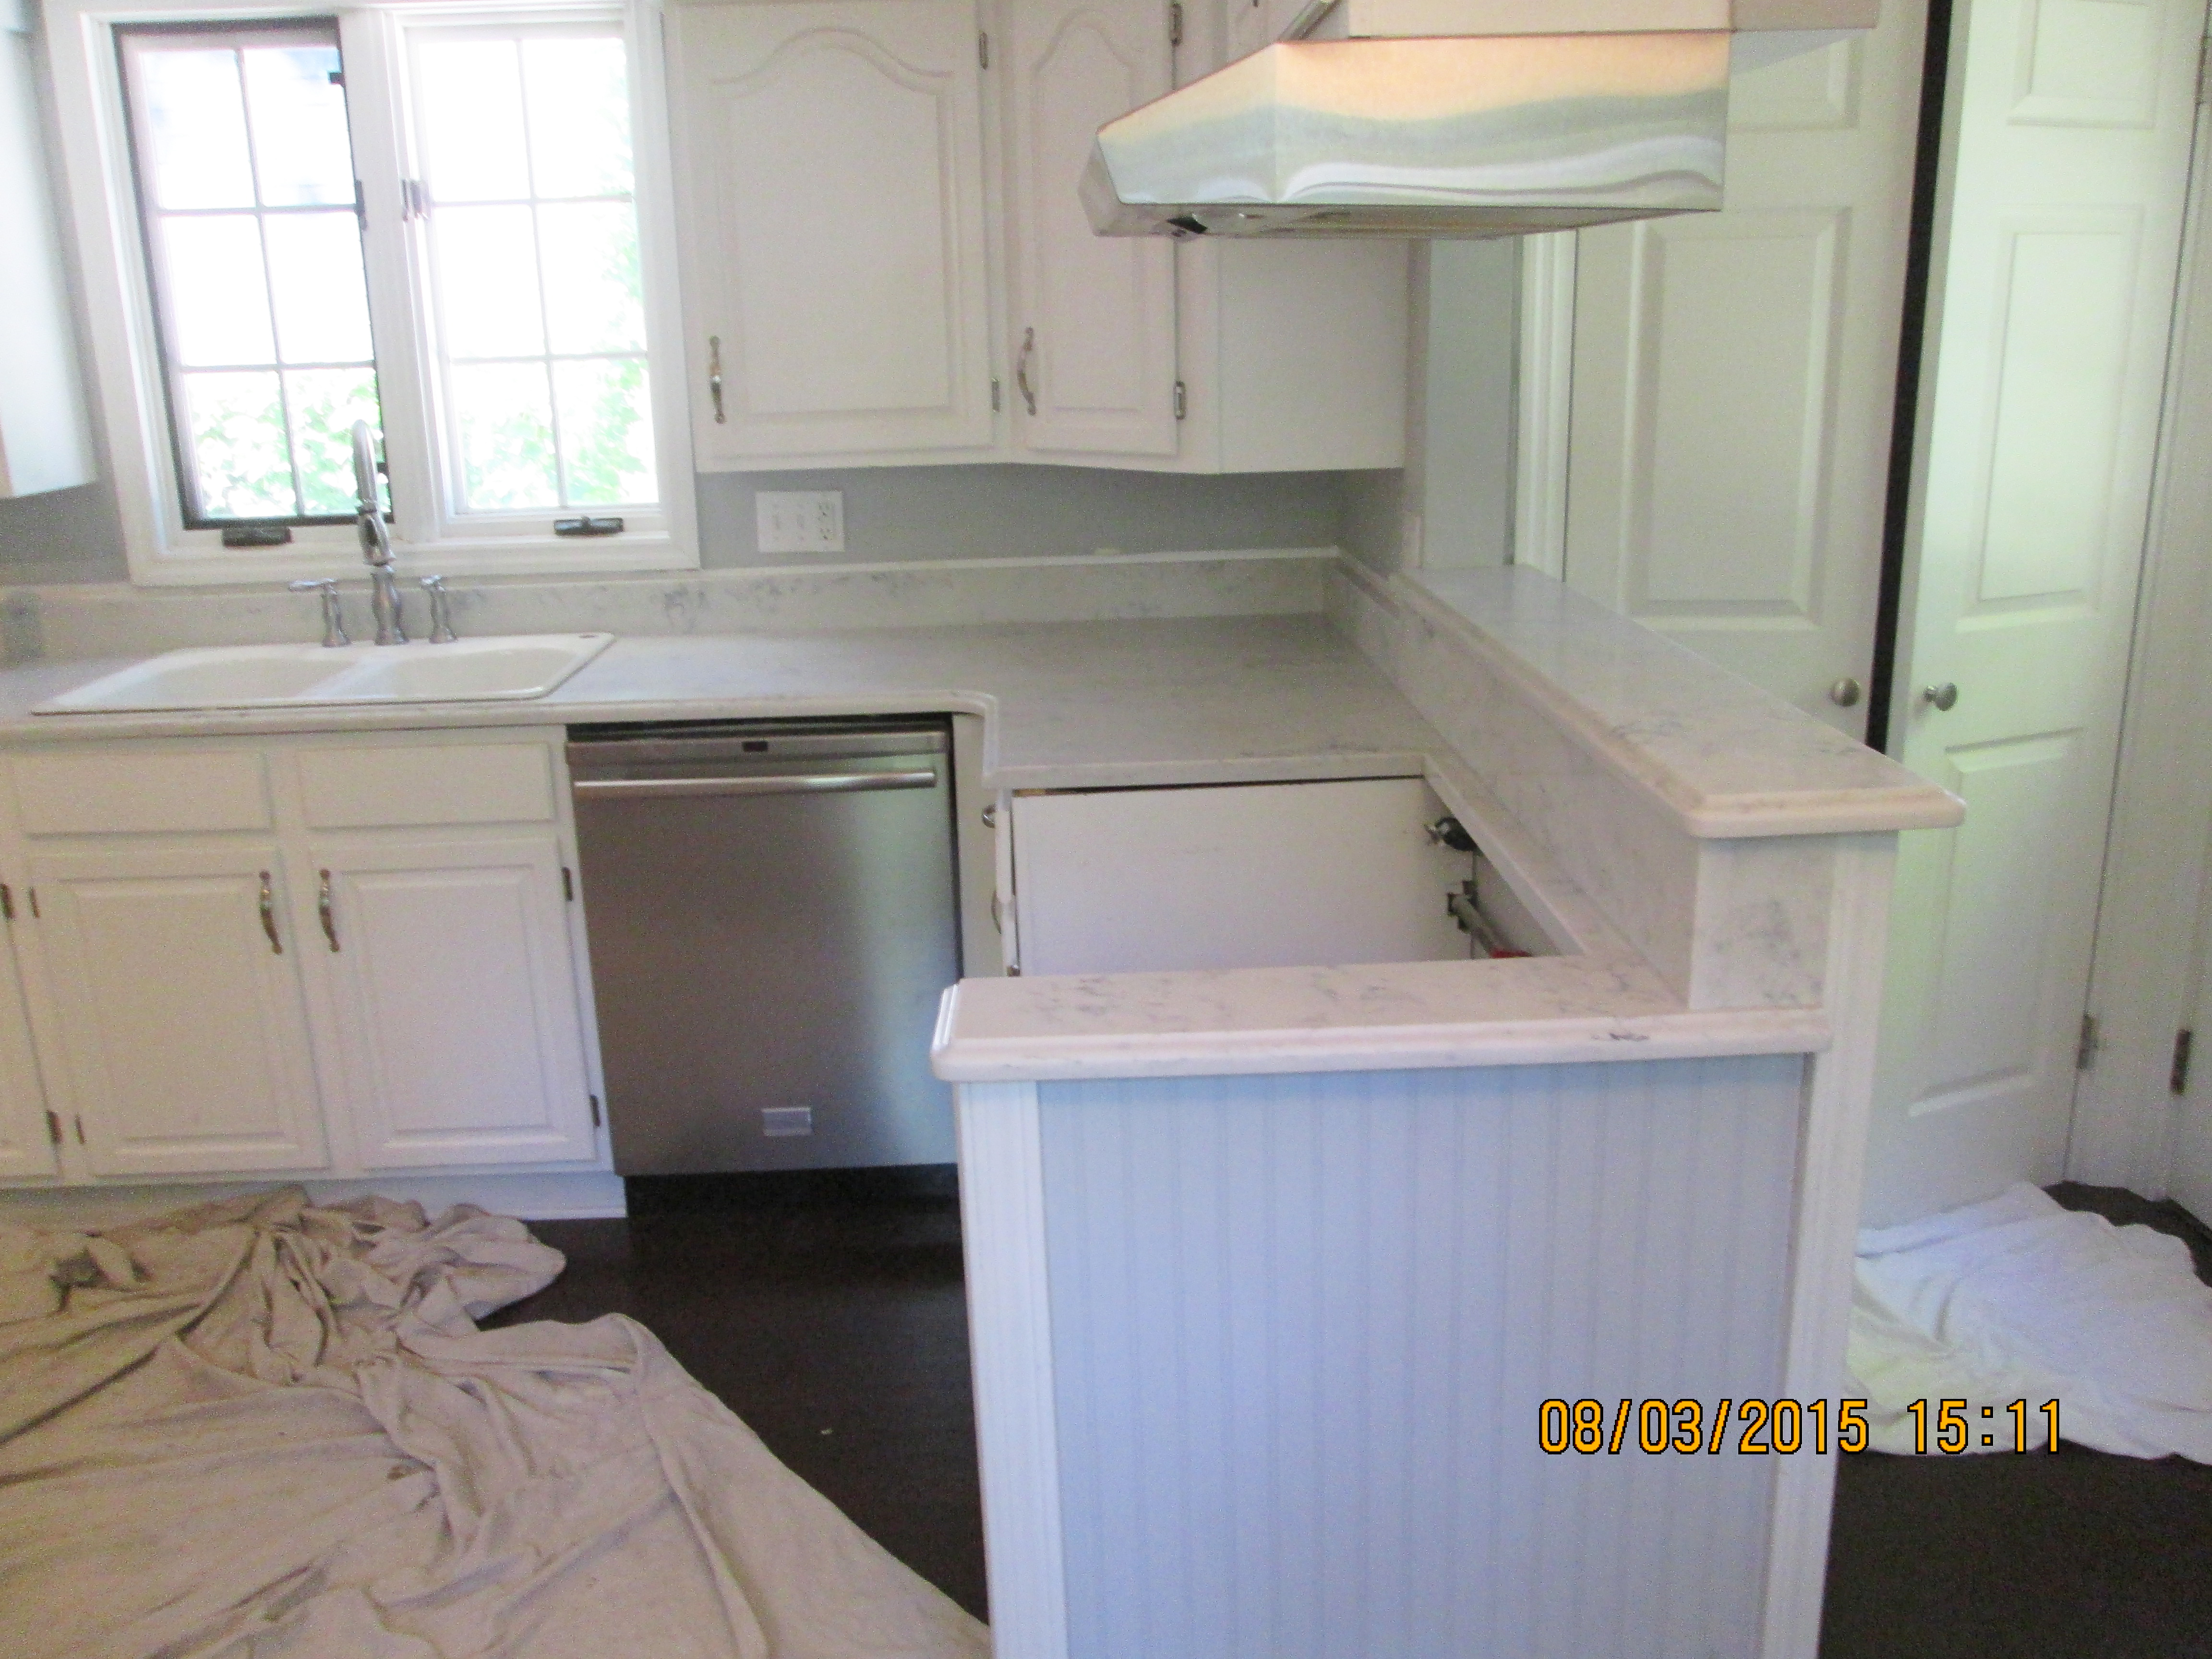 ideas kitchens grey kitchen countertop decor design countertops trends with cabinet ikea idea tops backsplash wooden magnificent modern home quartz and for stove white counter